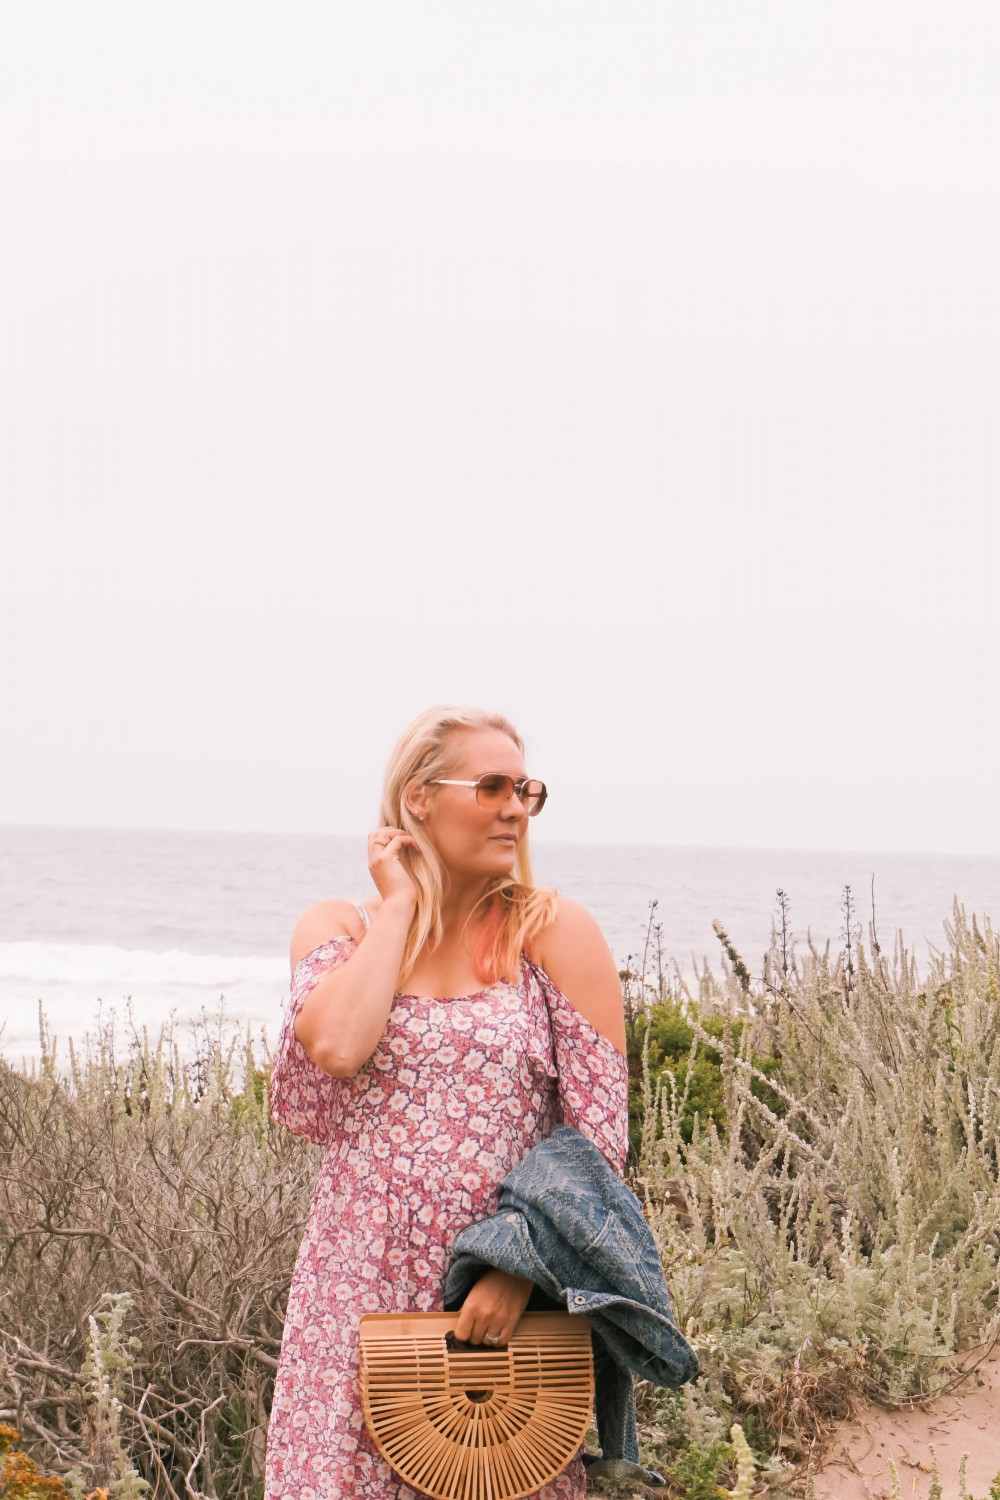 Breezy Beach Dress-Summer Floral Dress-Rebecca Minkoff-Outfit Inspiration-Visit Half Moon Bay-Denim Moto Jacket-Summer Style-Have Need Want 5